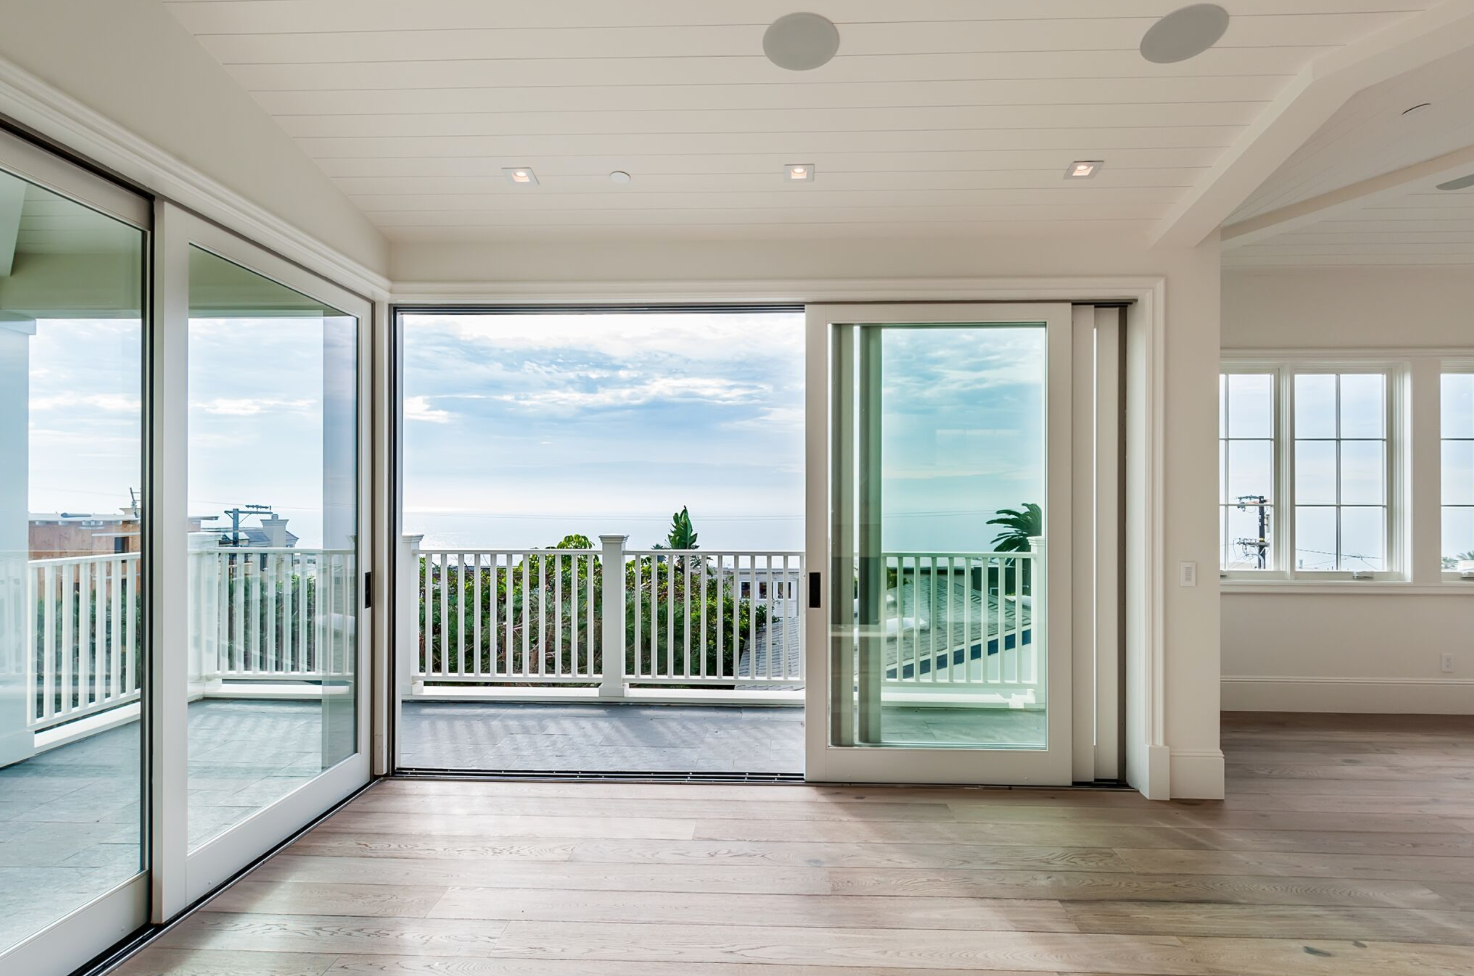 Living at the beach is all about highlighting those fabulous coastal views! The windows and doors throughout this home are giant, floor to ceiling and easily slide to create the home's seamless design from indoor to out. Remember: Keep it subtle. You never want design to compete with an incredible view.